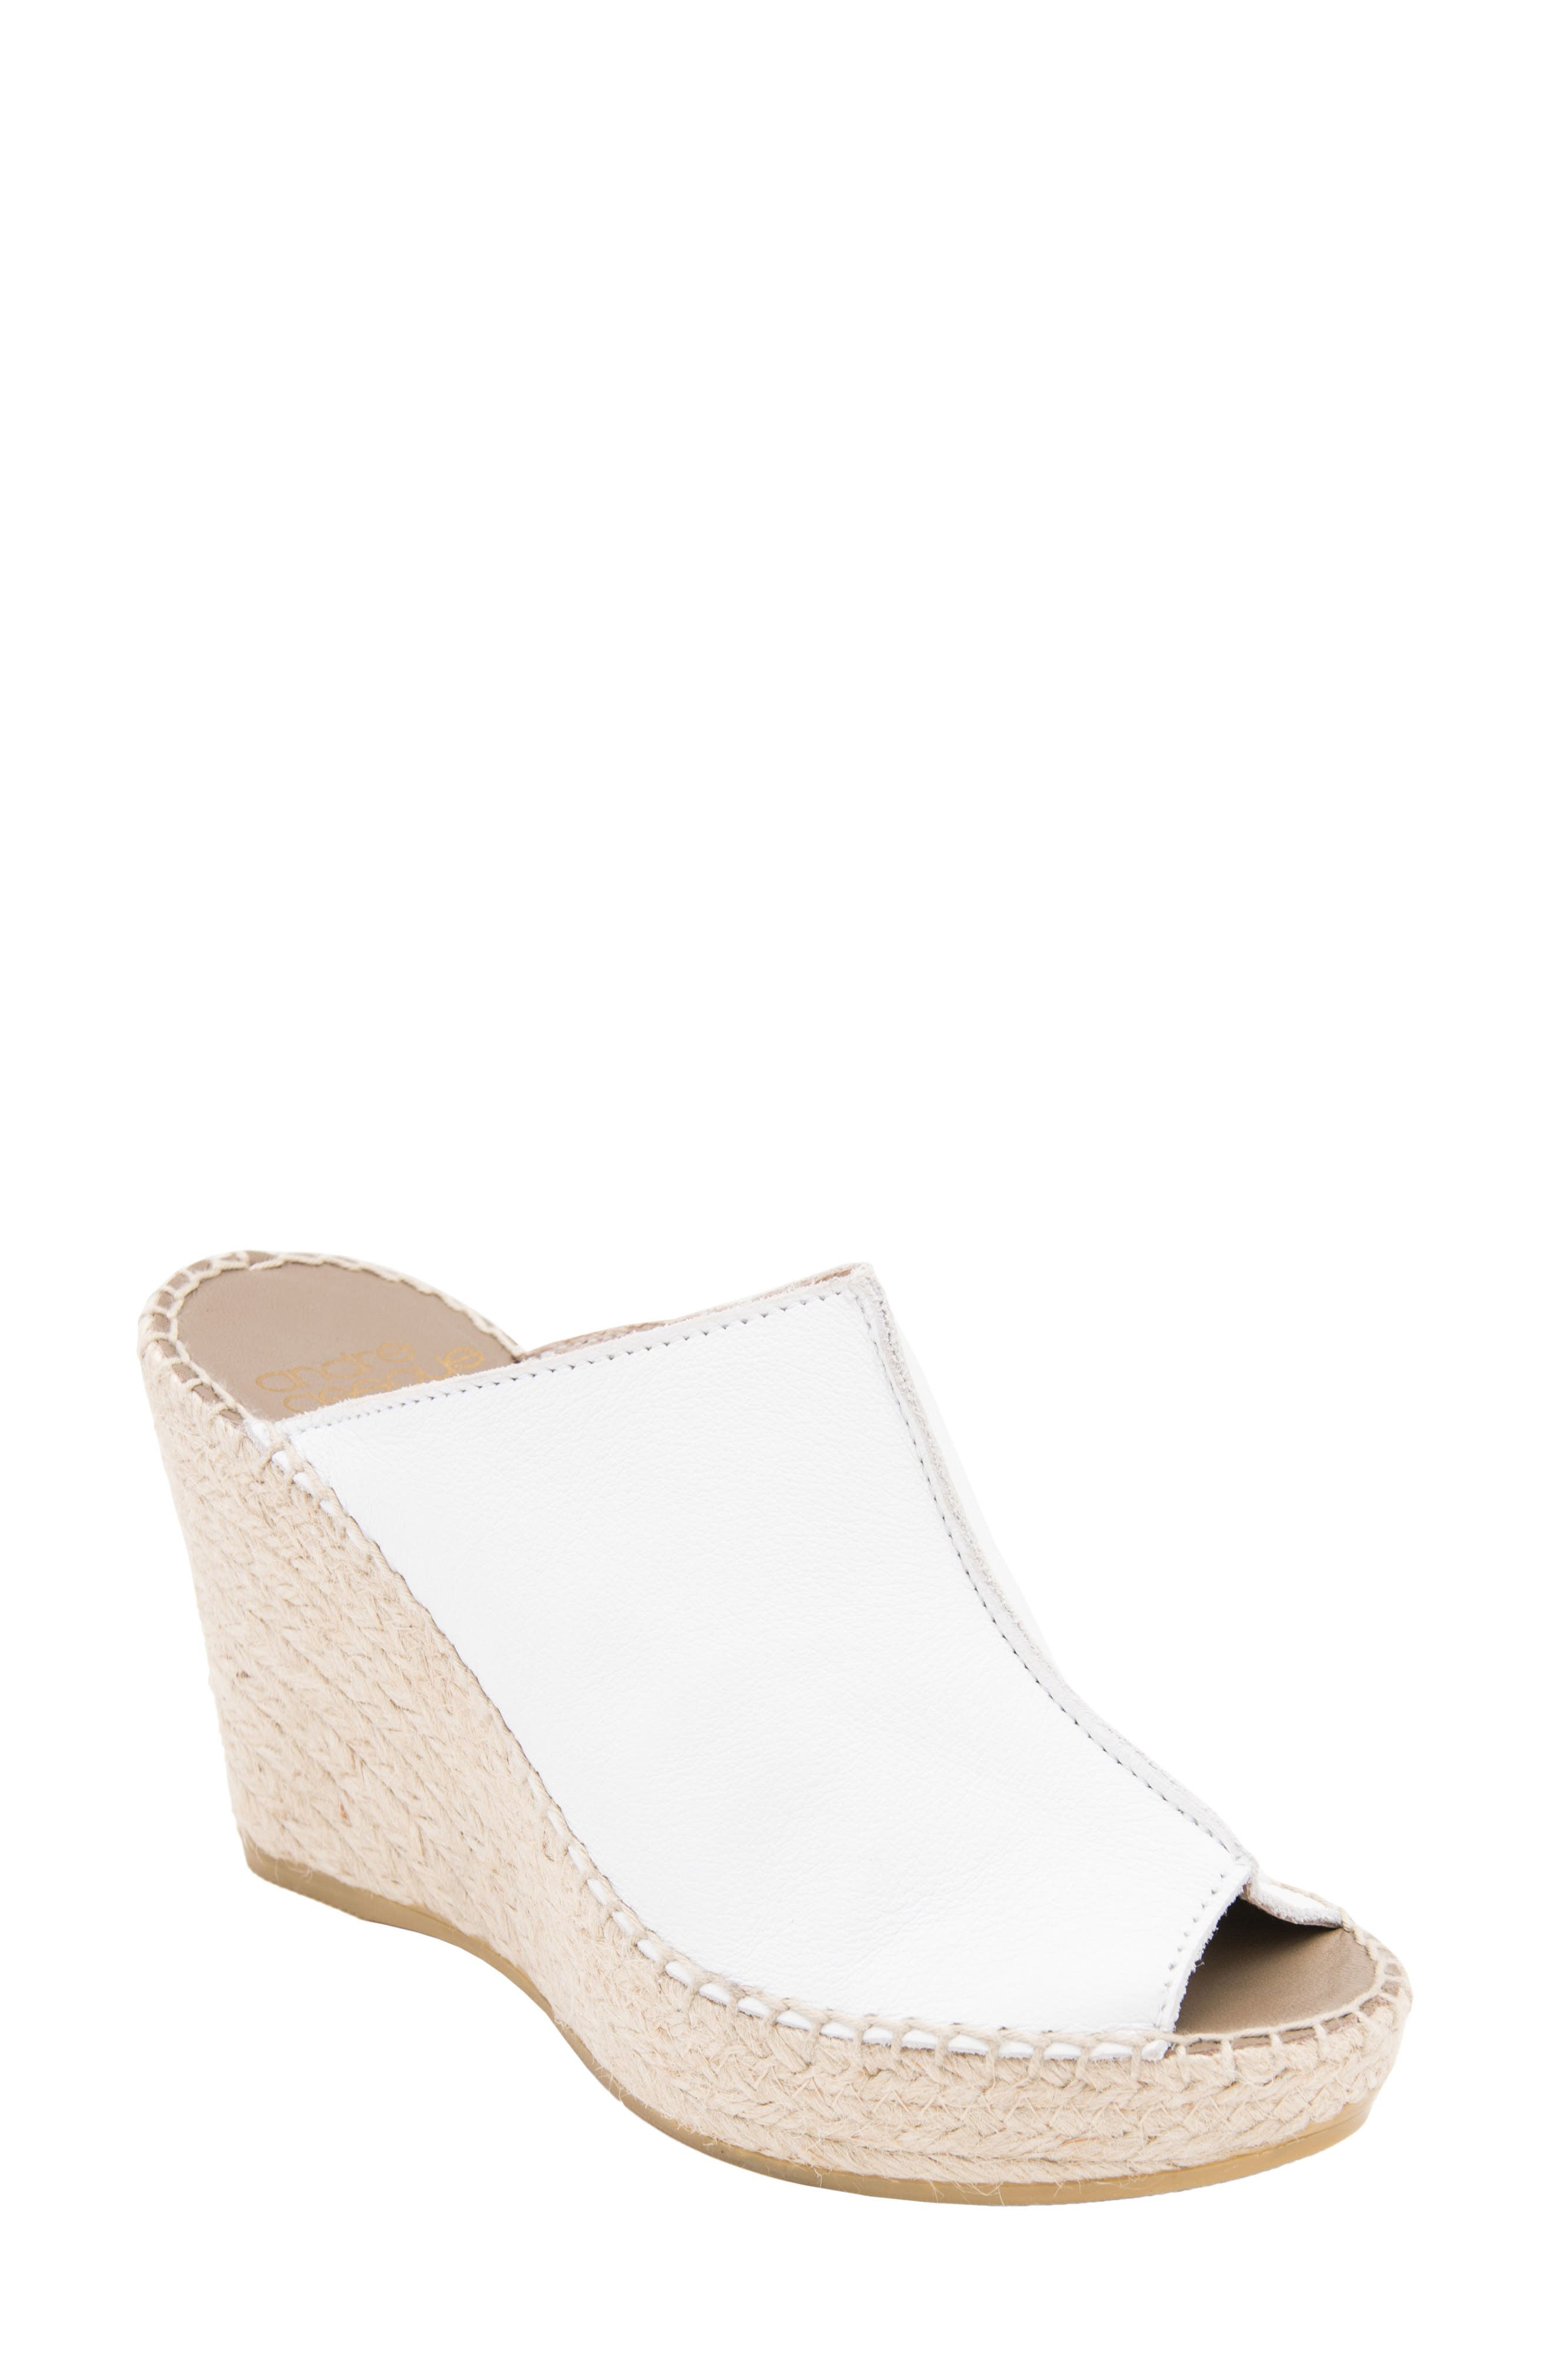 ANDRE ASSOUS Cici Espadrille Wedge in White Leather